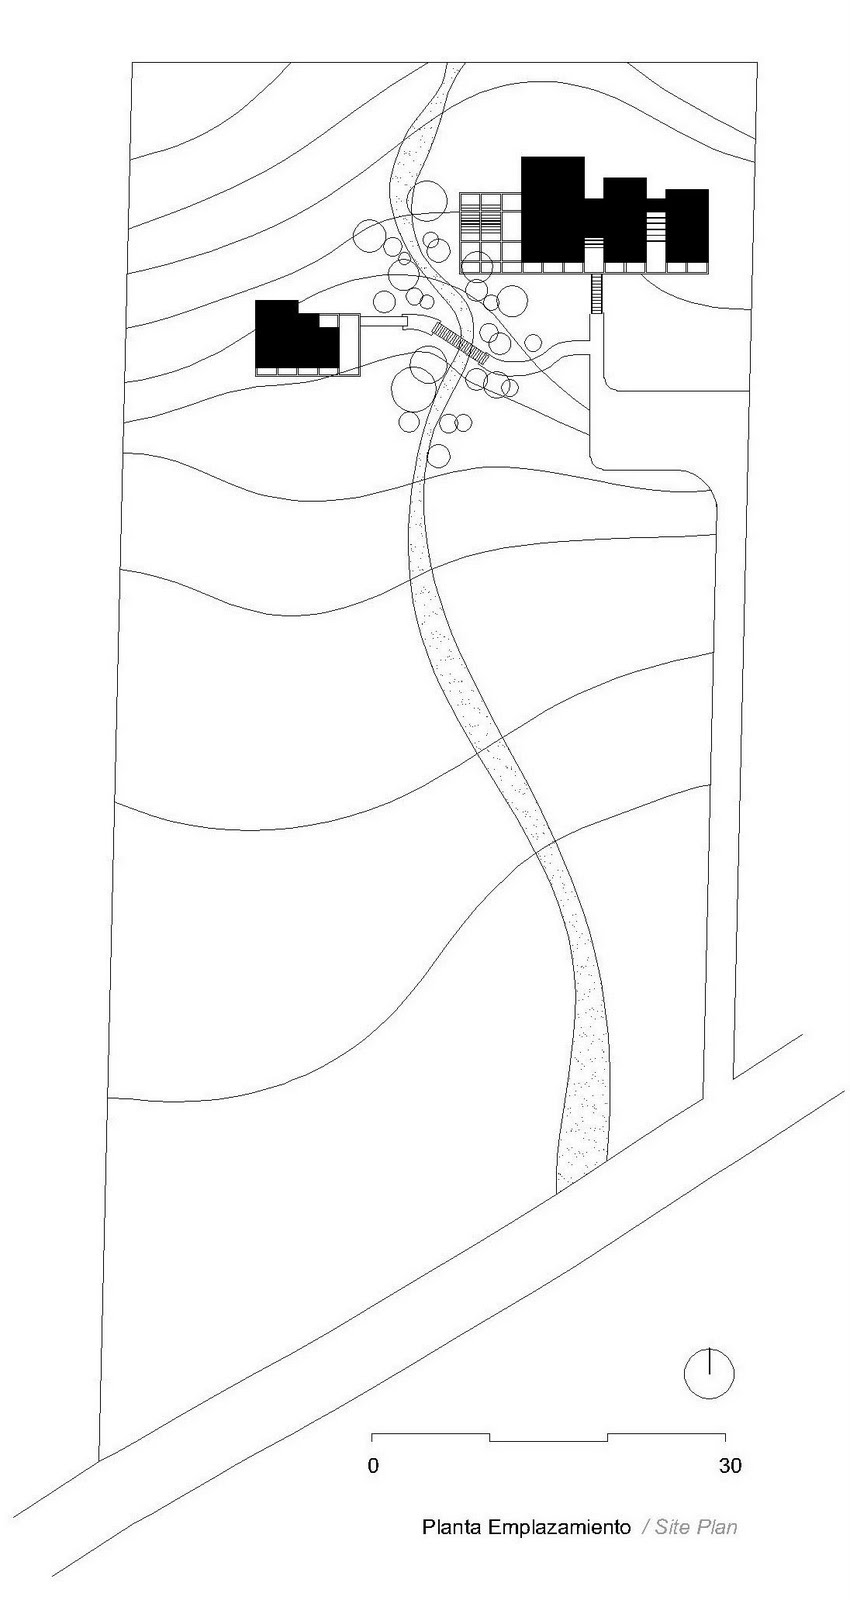 Site plan drawing © courtesy of loi arquitectos